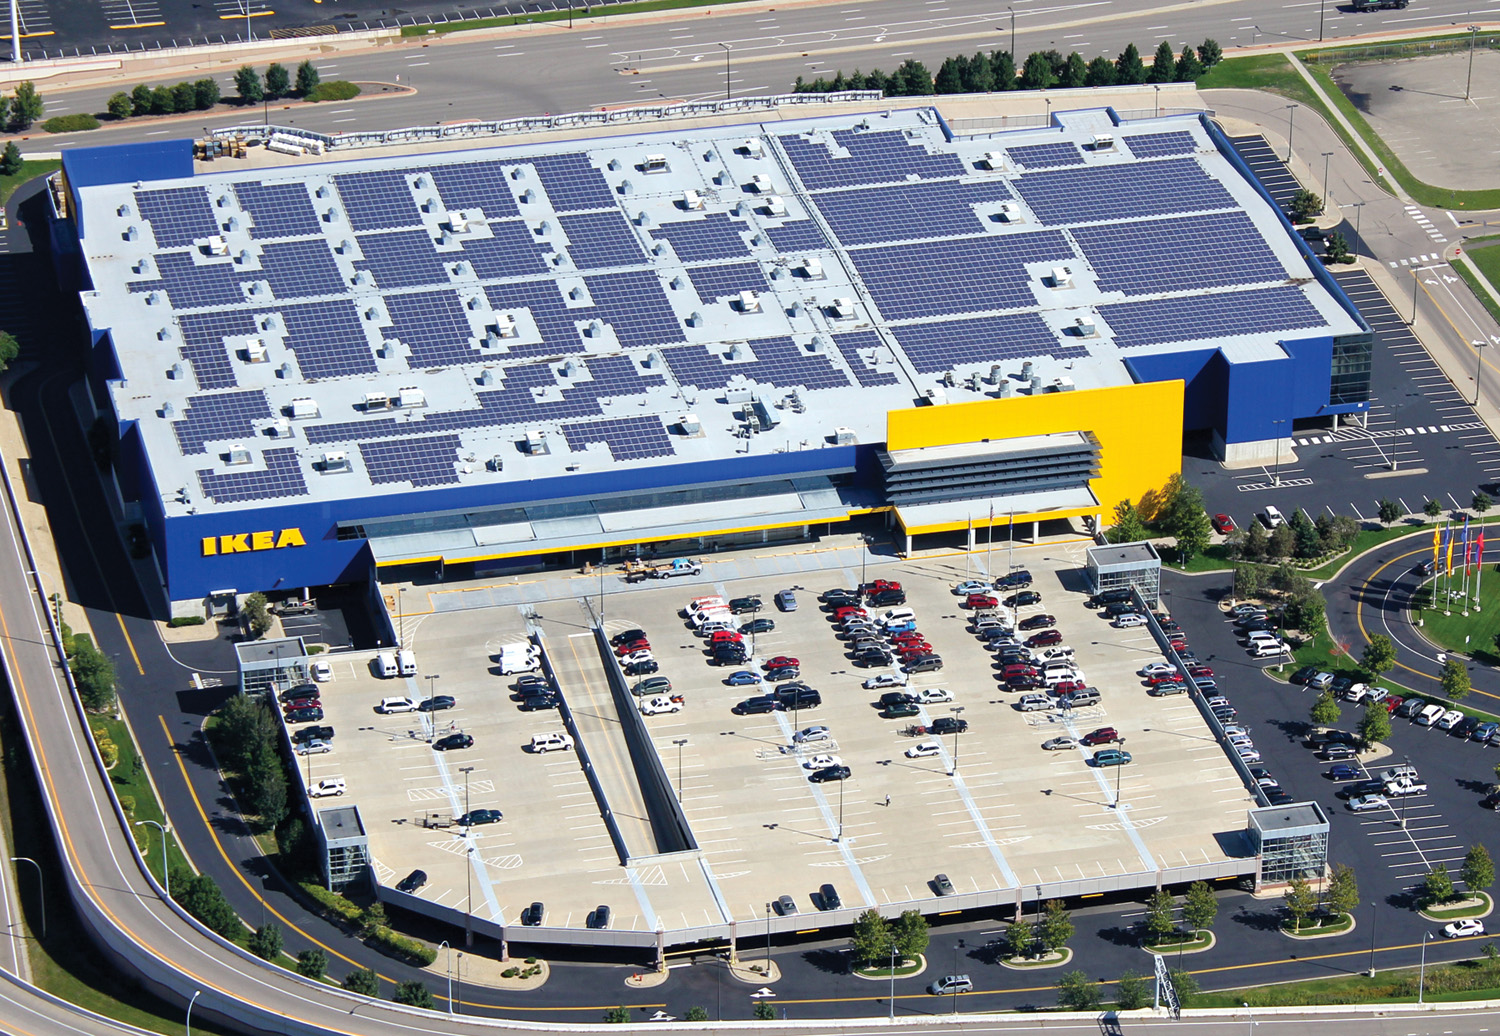 IKEA's Bloomington, Minn., rooftop photovoltaic array—its 31st U.S. solar project.